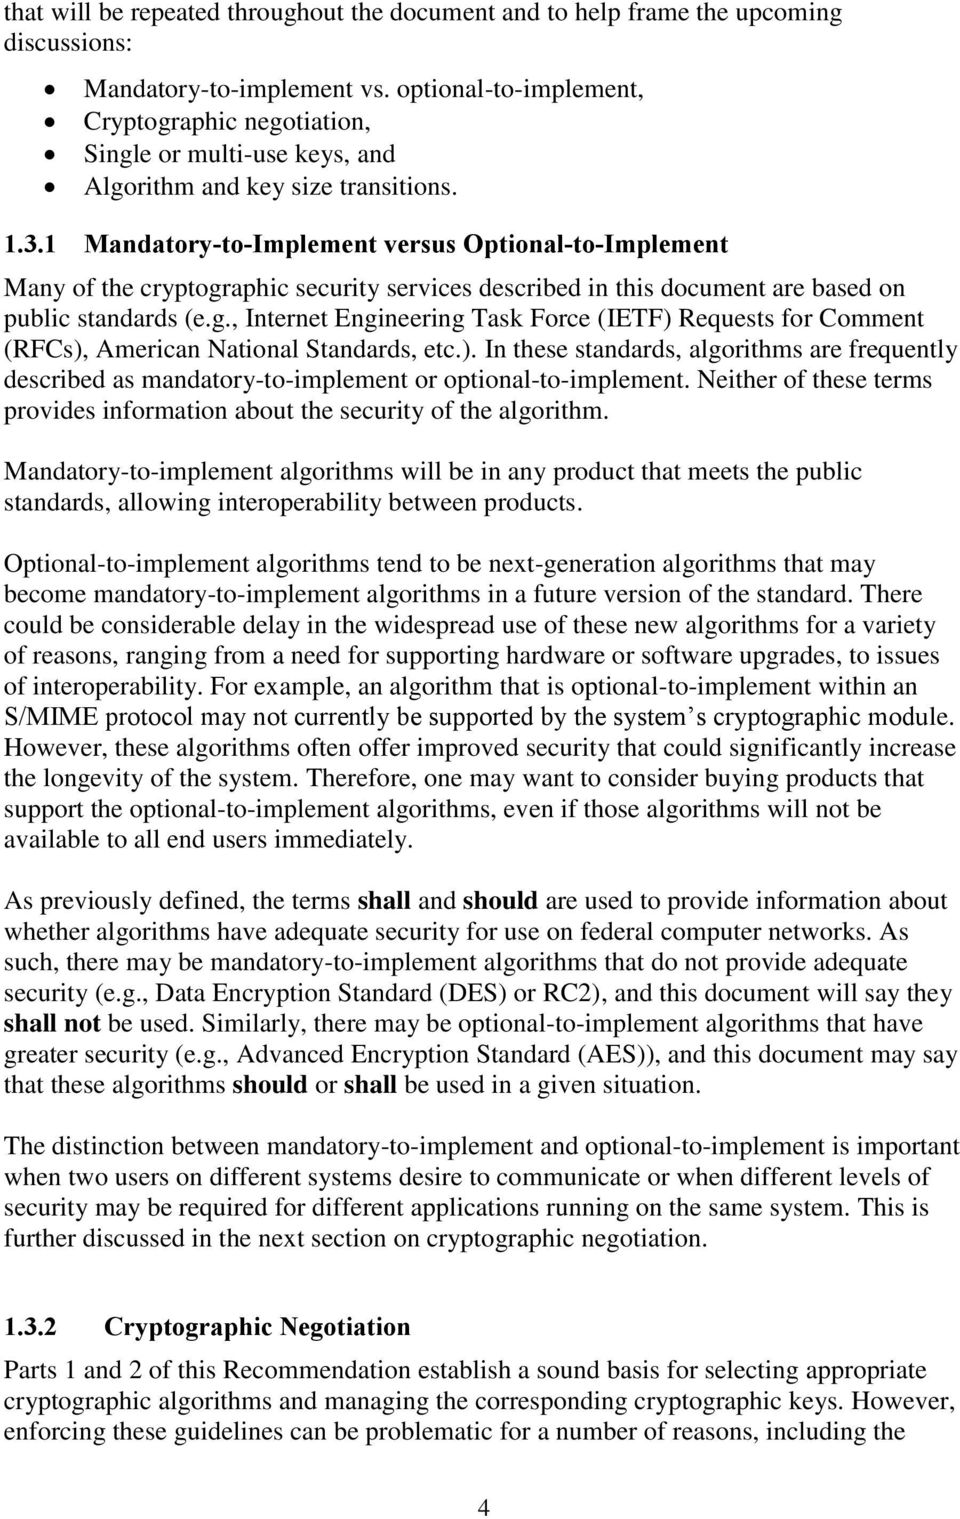 1 Mandatory-to-Implement versus Optional-to-Implement Many of the cryptographic security services described in this document are based on public standards (e.g., Internet Engineering Task Force (IETF) Requests for Comment (RFCs), American National Standards, etc.